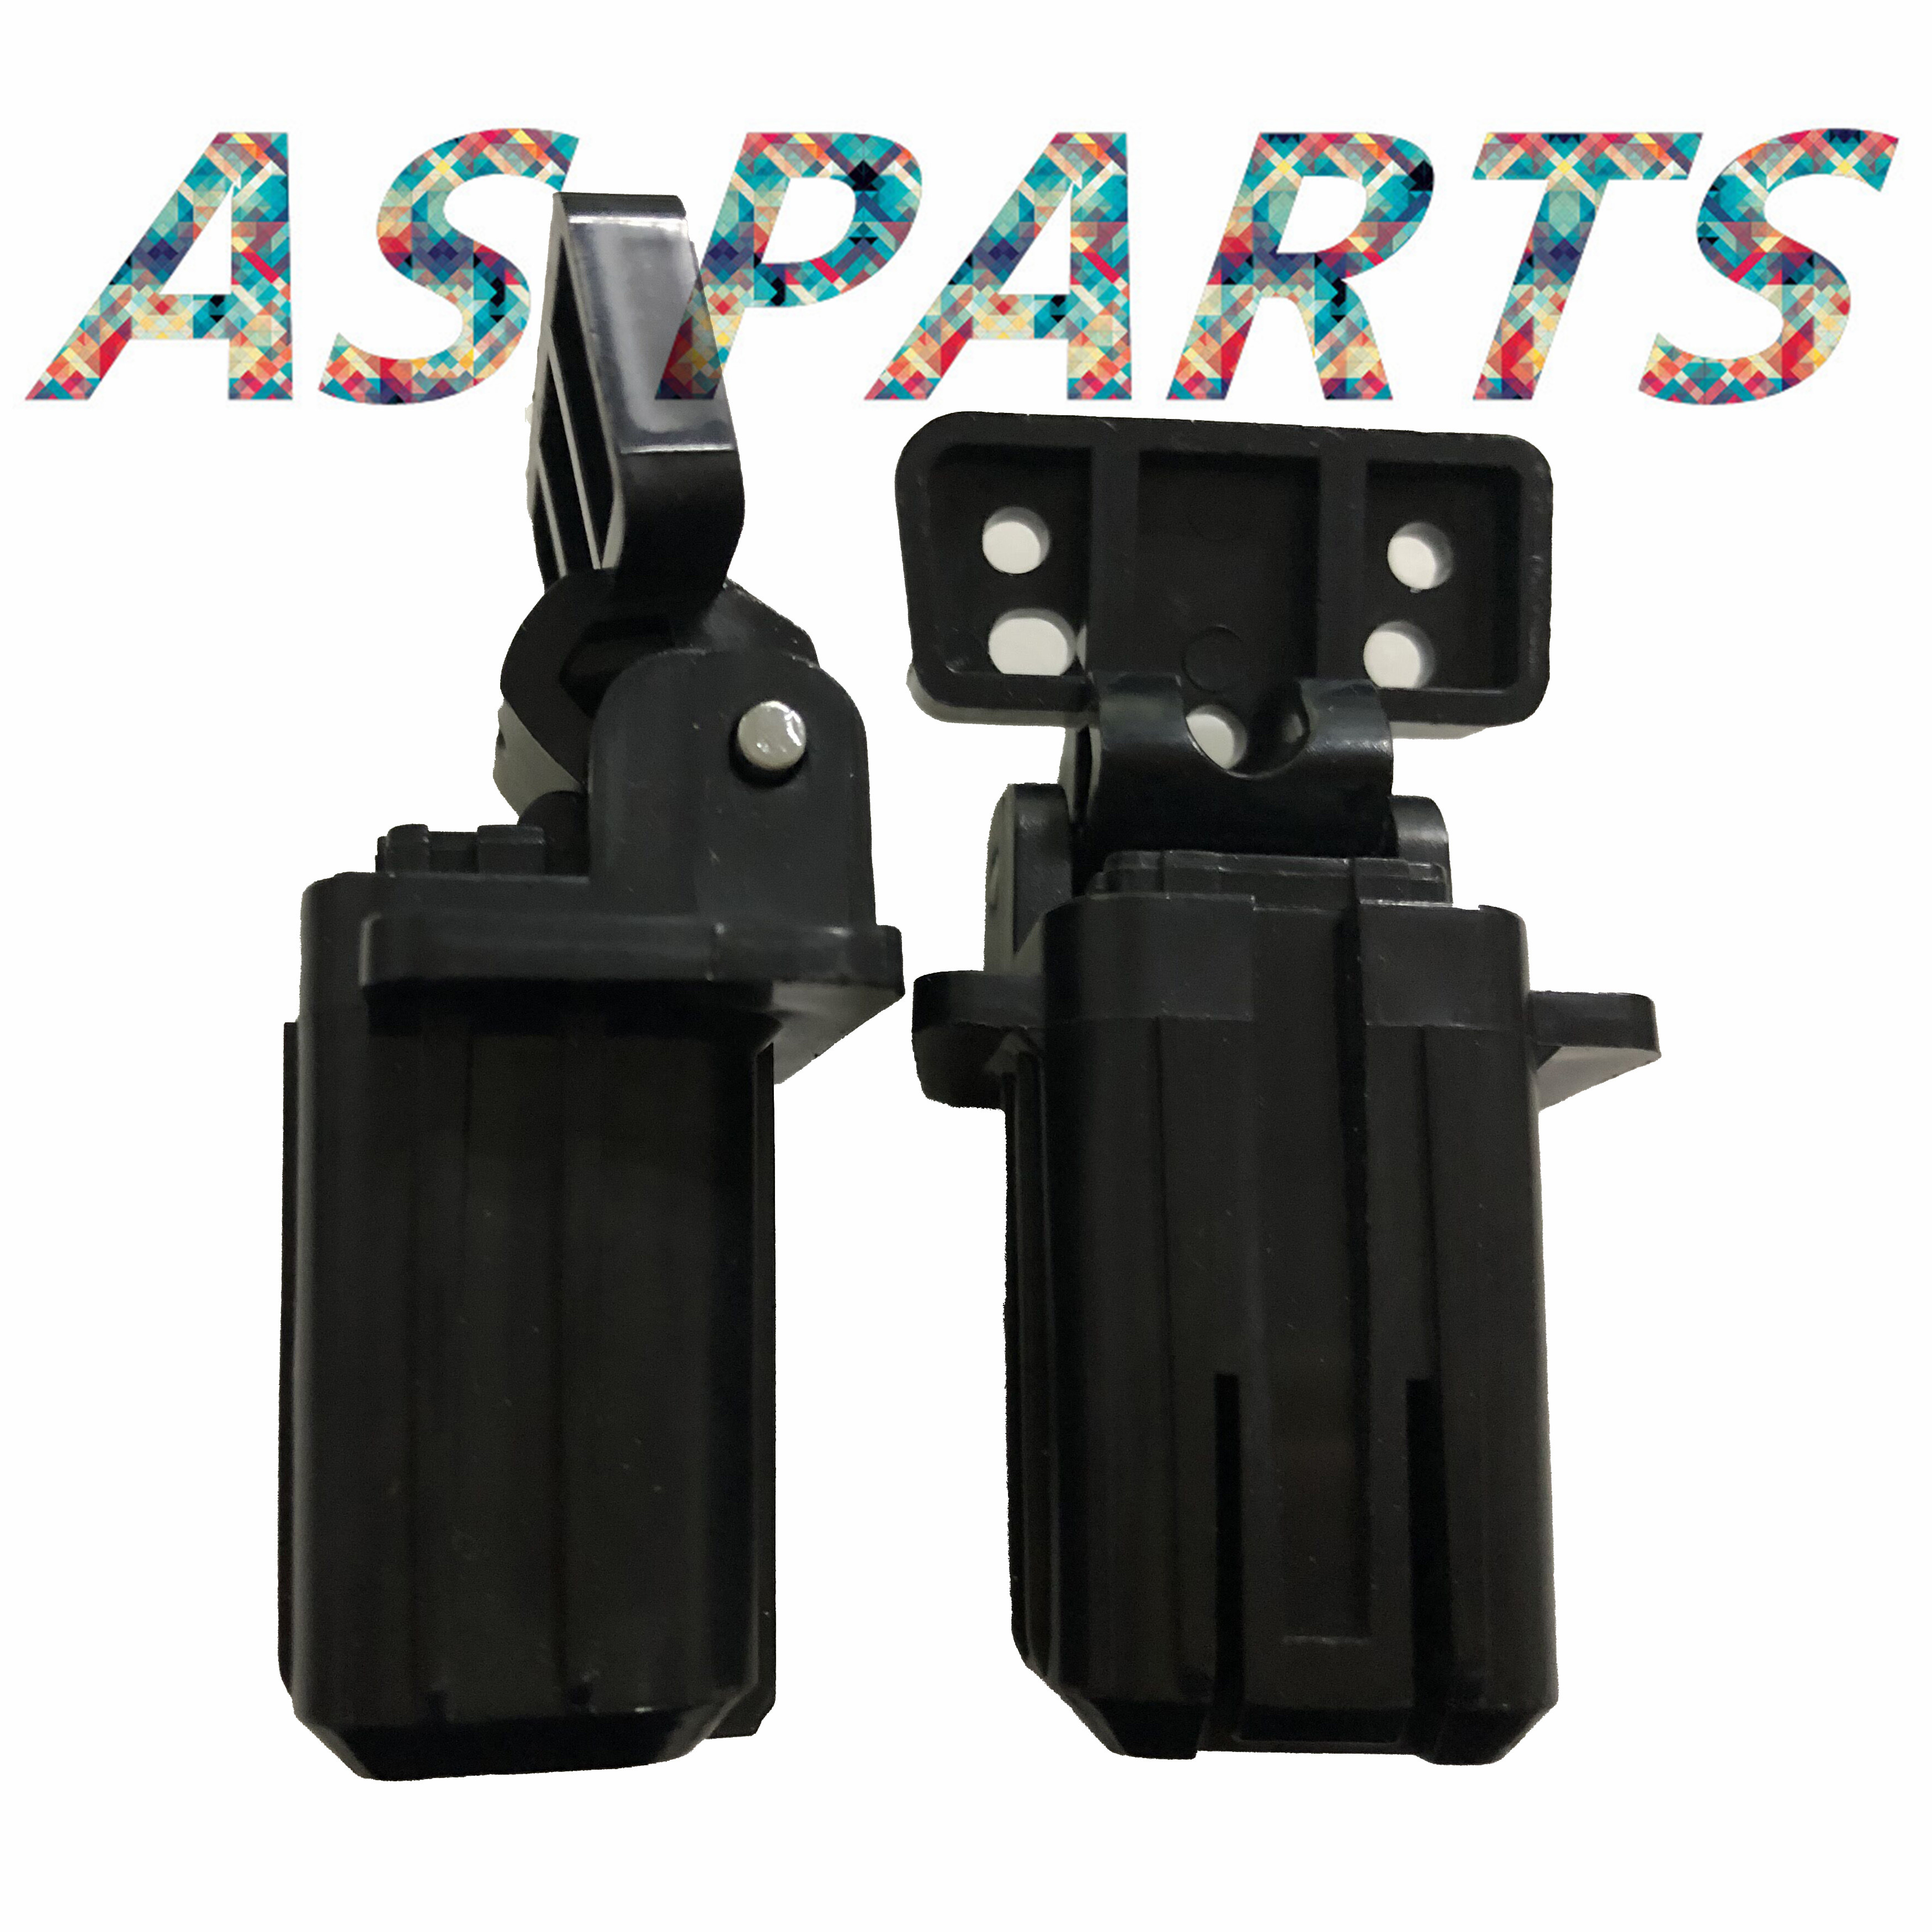 10 CF288 60027 CF288 60030 Assy ADF Hinge Assembly for HP Pro 400 MFP M401 M425